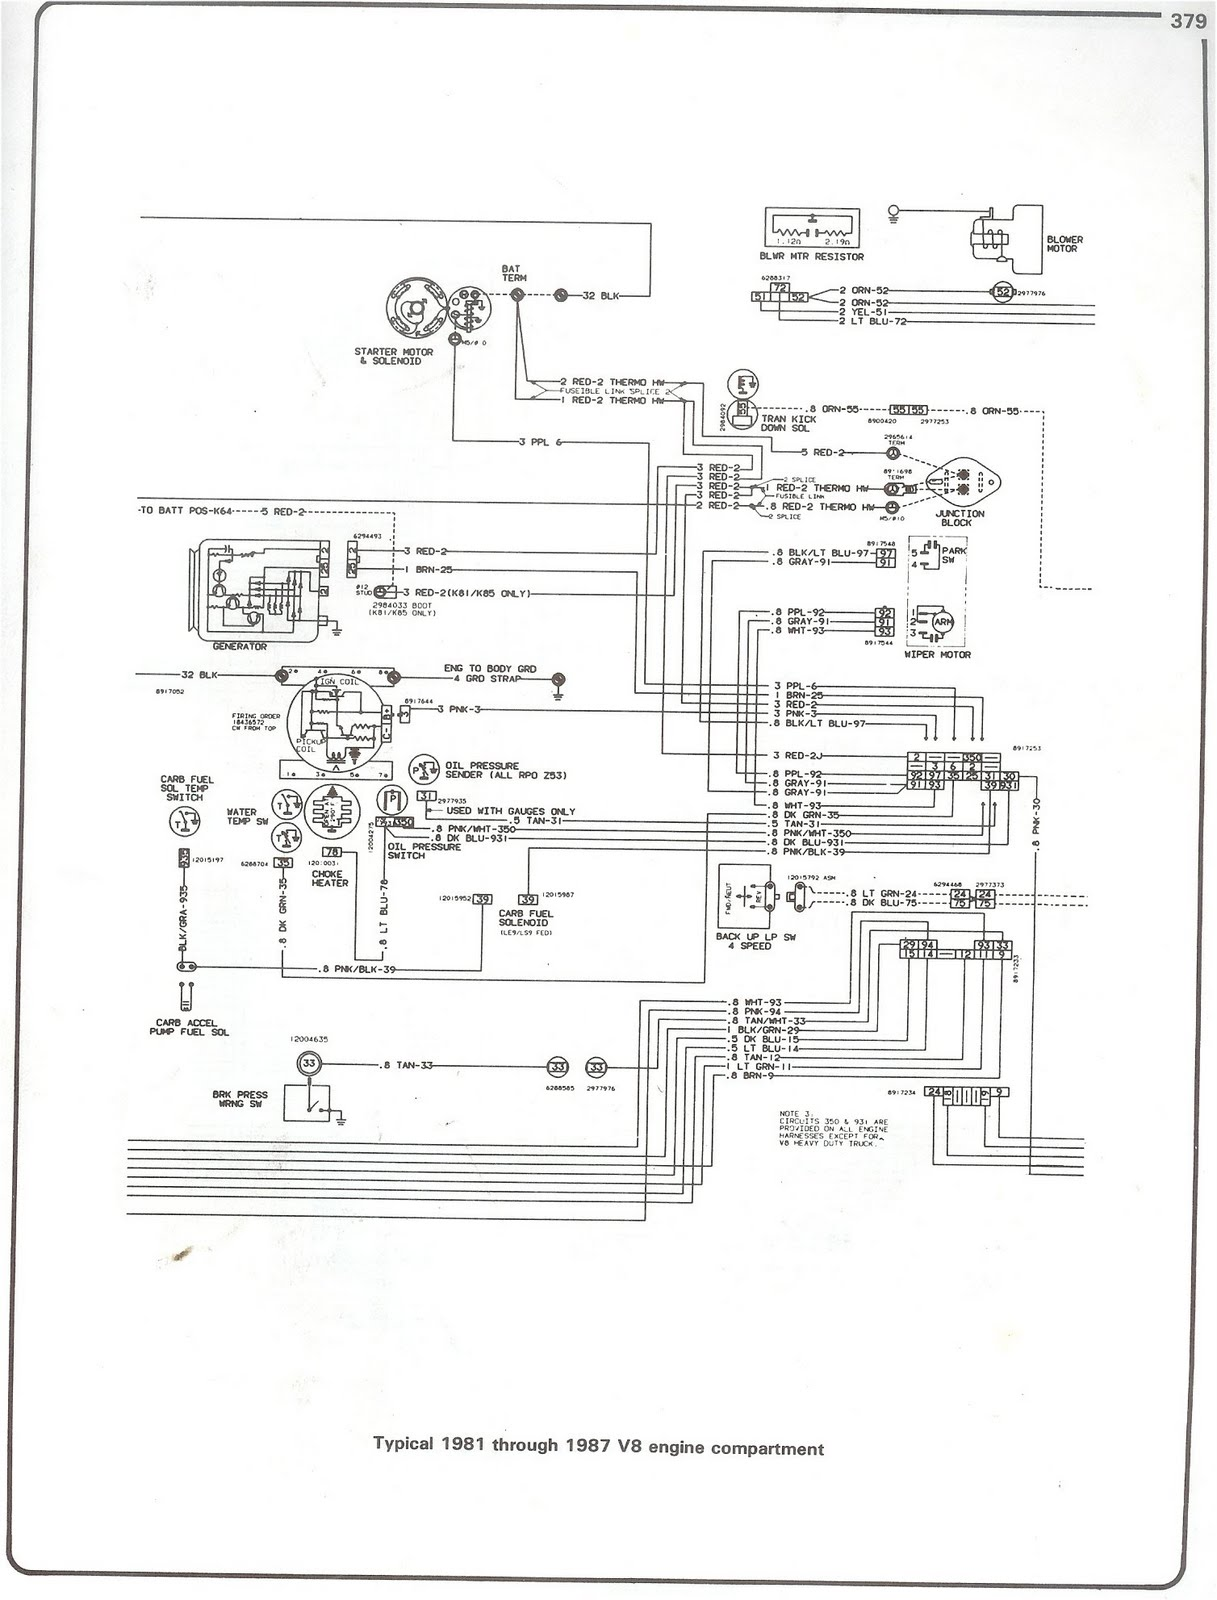 86 chevy truck wiring harness wiring diagram name 81 chevy truck wiring harness [ 1217 x 1600 Pixel ]